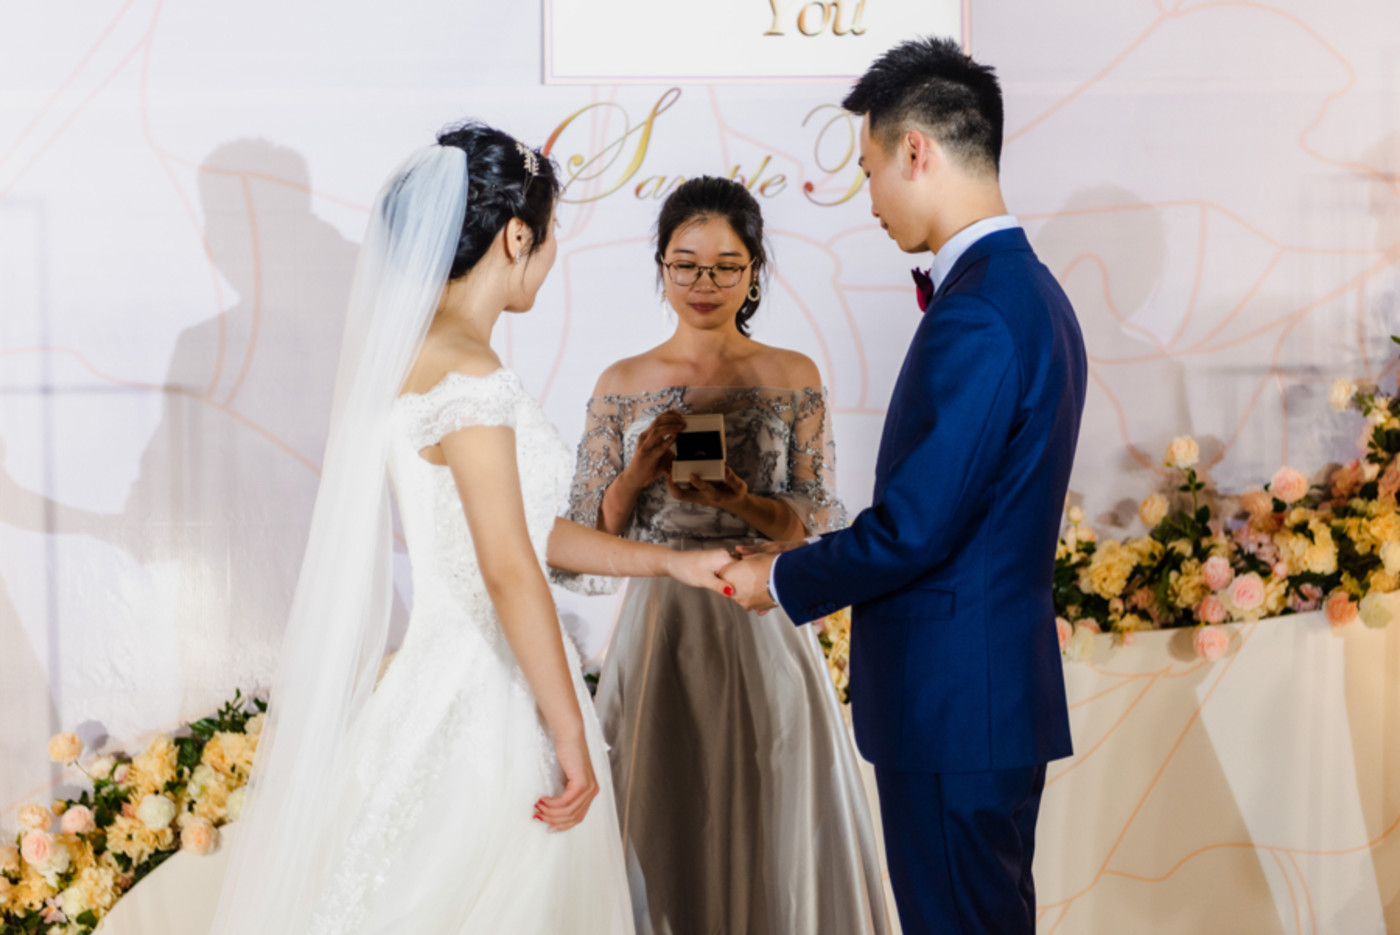 LUO&ZHANG68